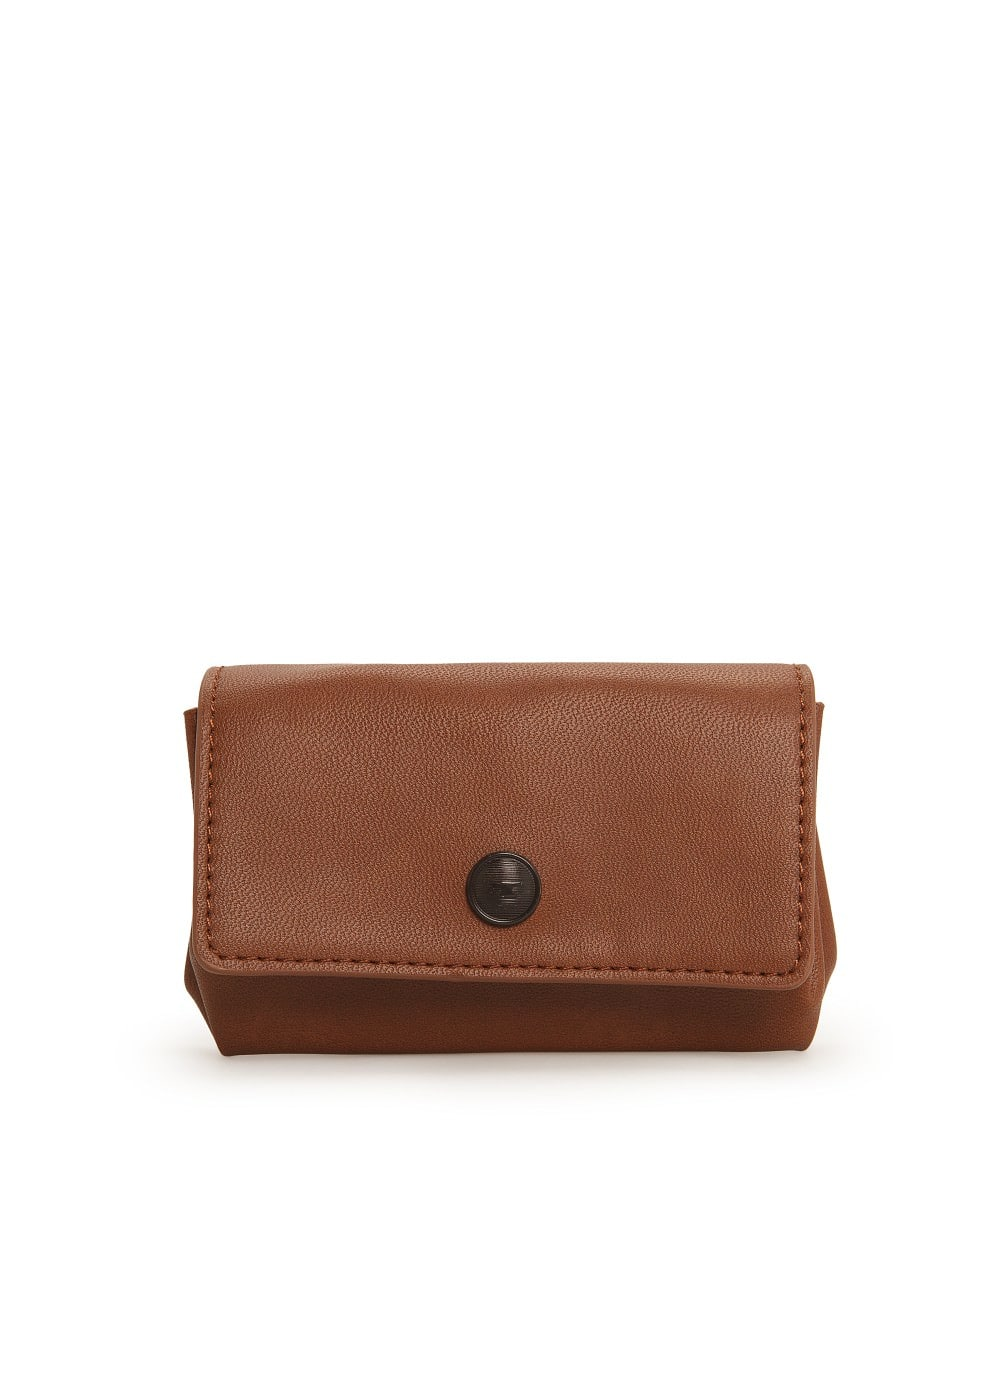 Triple compartment coin purse